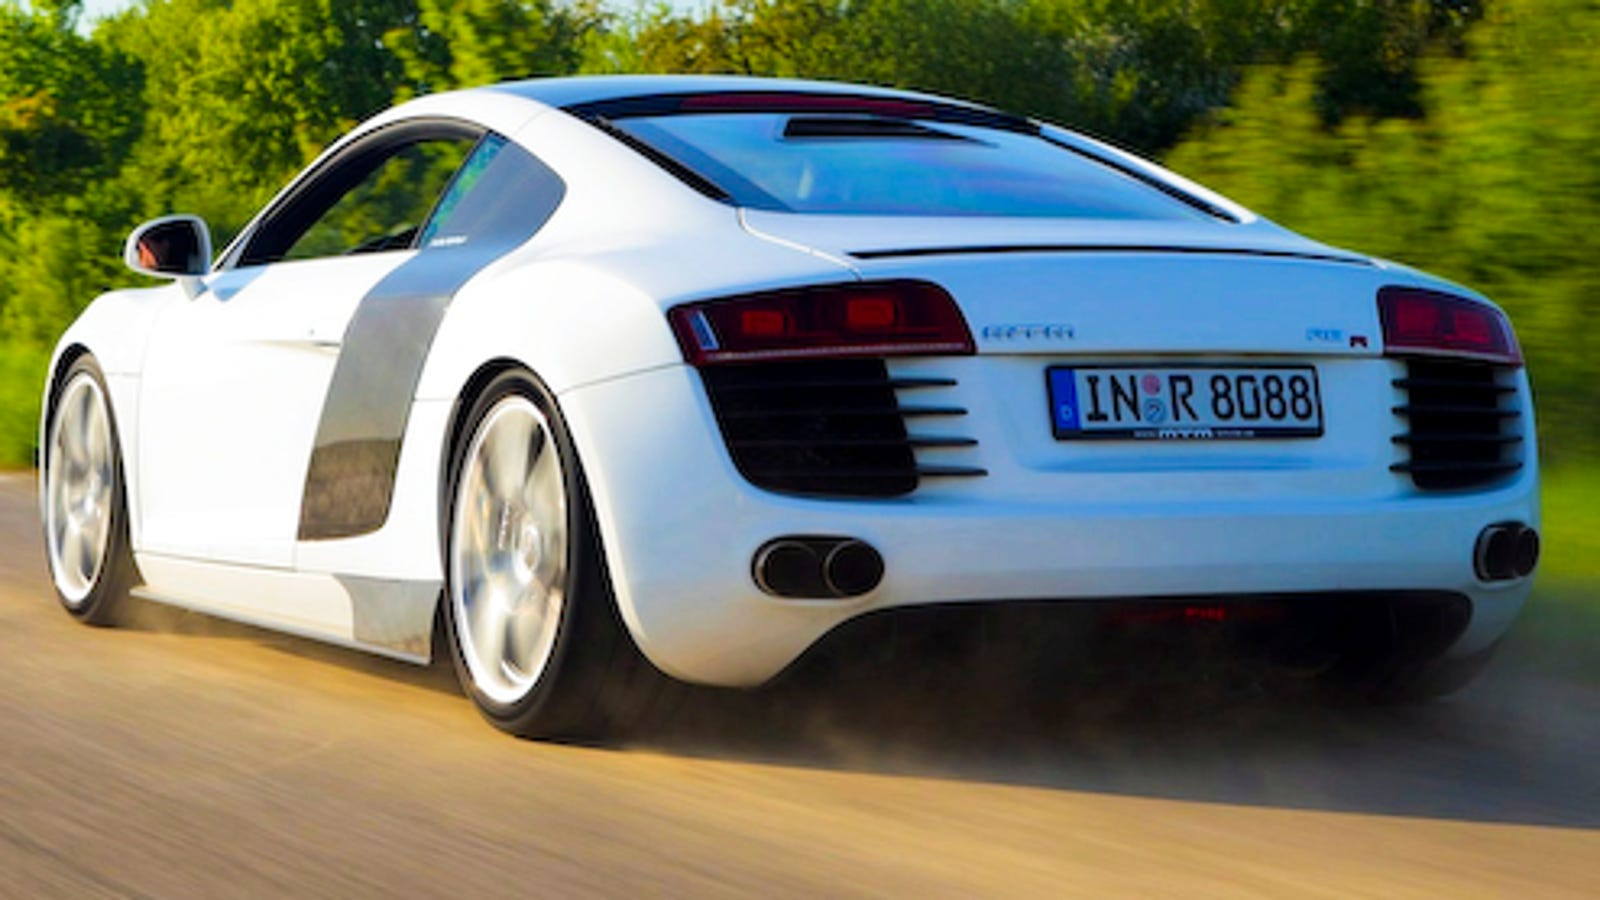 mtm supercharges audi r8 takes power up to 560 hp. Black Bedroom Furniture Sets. Home Design Ideas